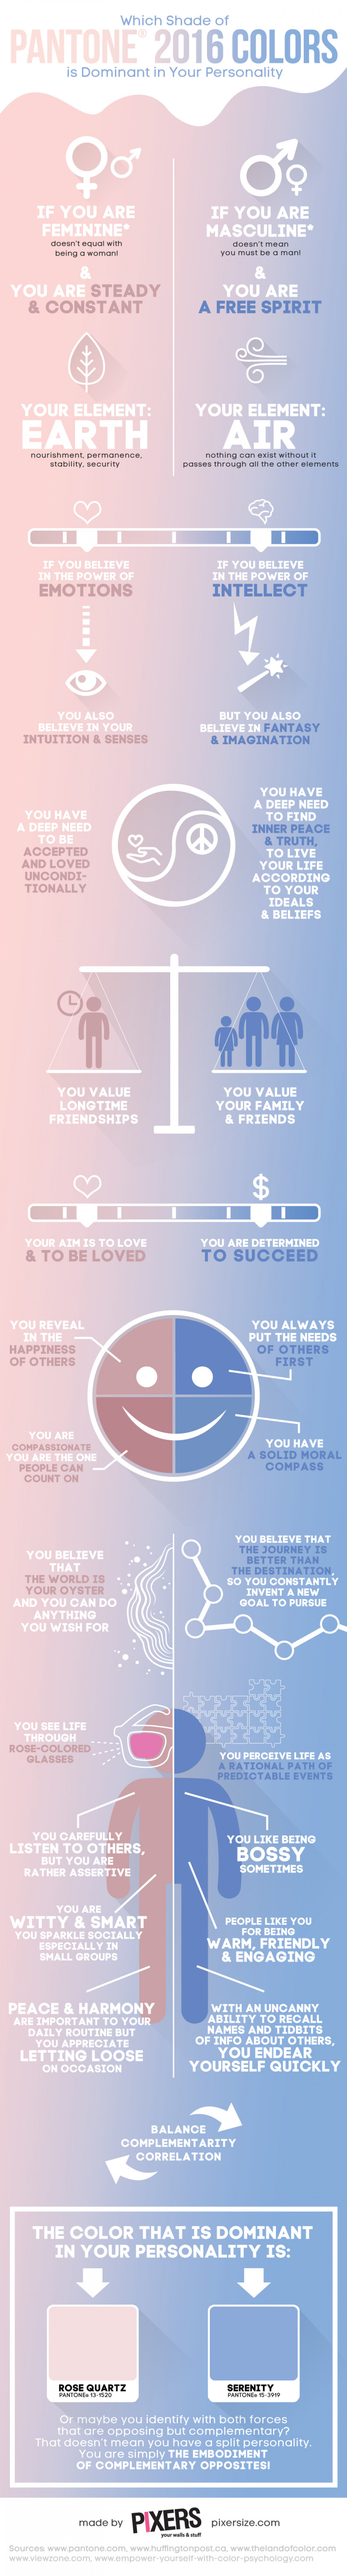 Which Shade of PANTONE 2016 Colors is Dominant in Your Personality Infographic